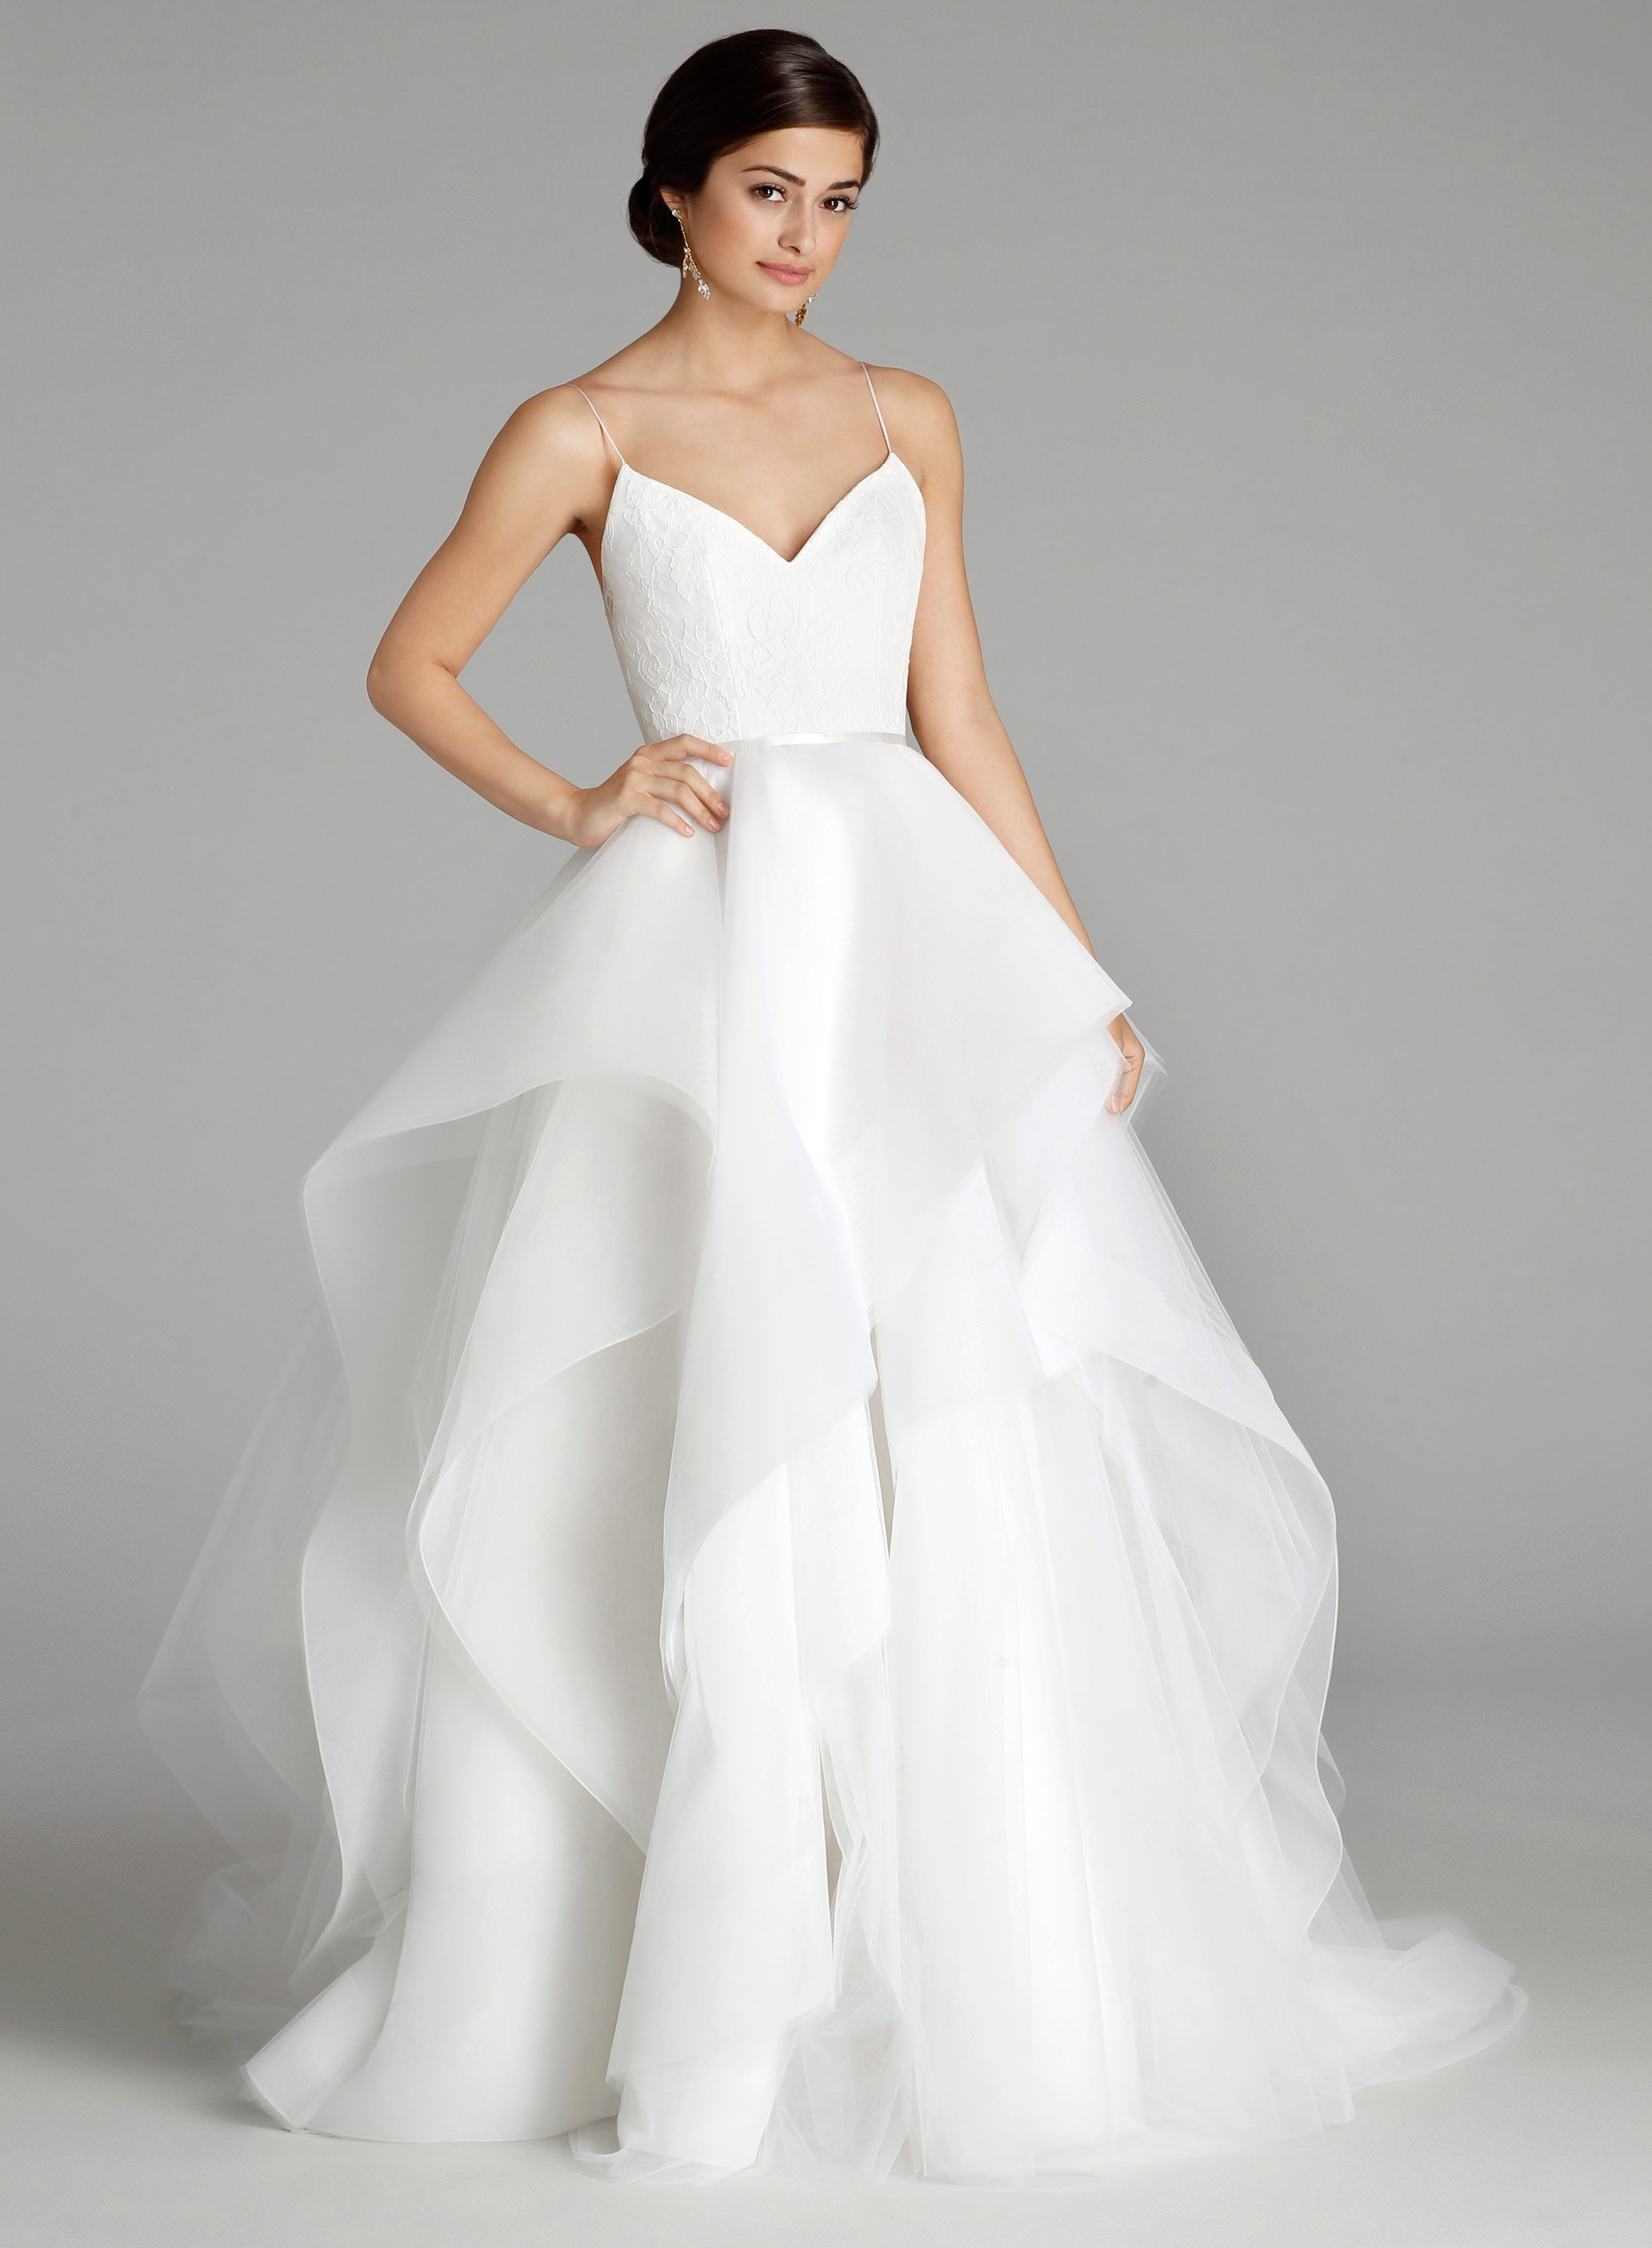 Buy used wedding dress couture style bridal gowns and wedding dress buy used wedding dress junglespirit Images